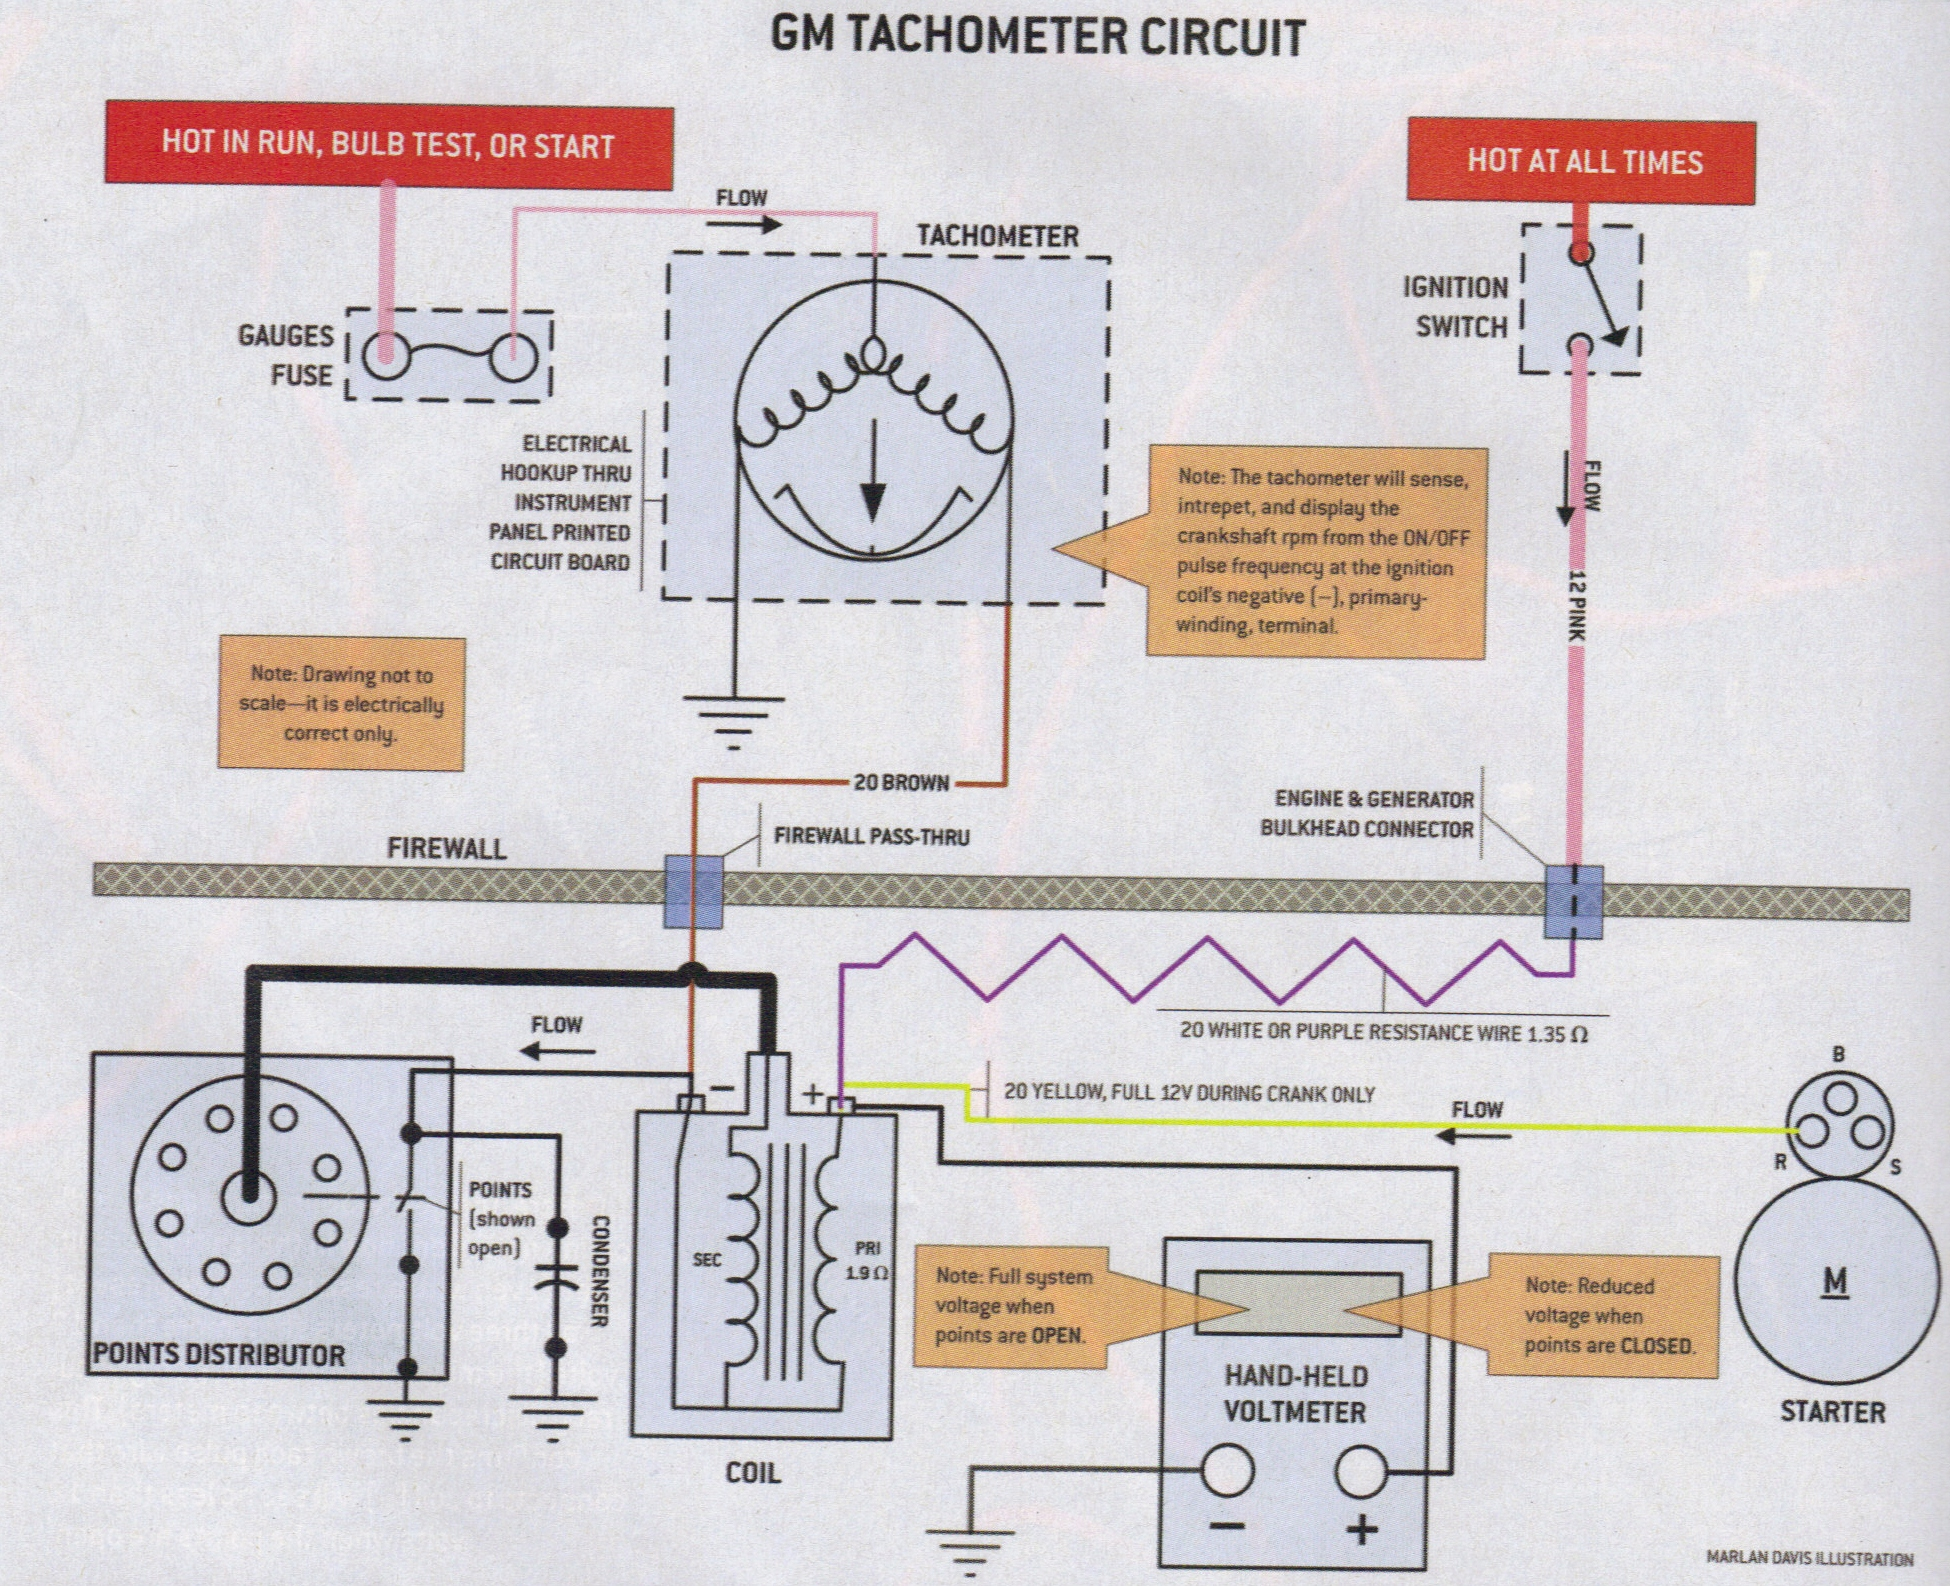 1989 Corvette Tach Wiring - wiring diagram on the net on